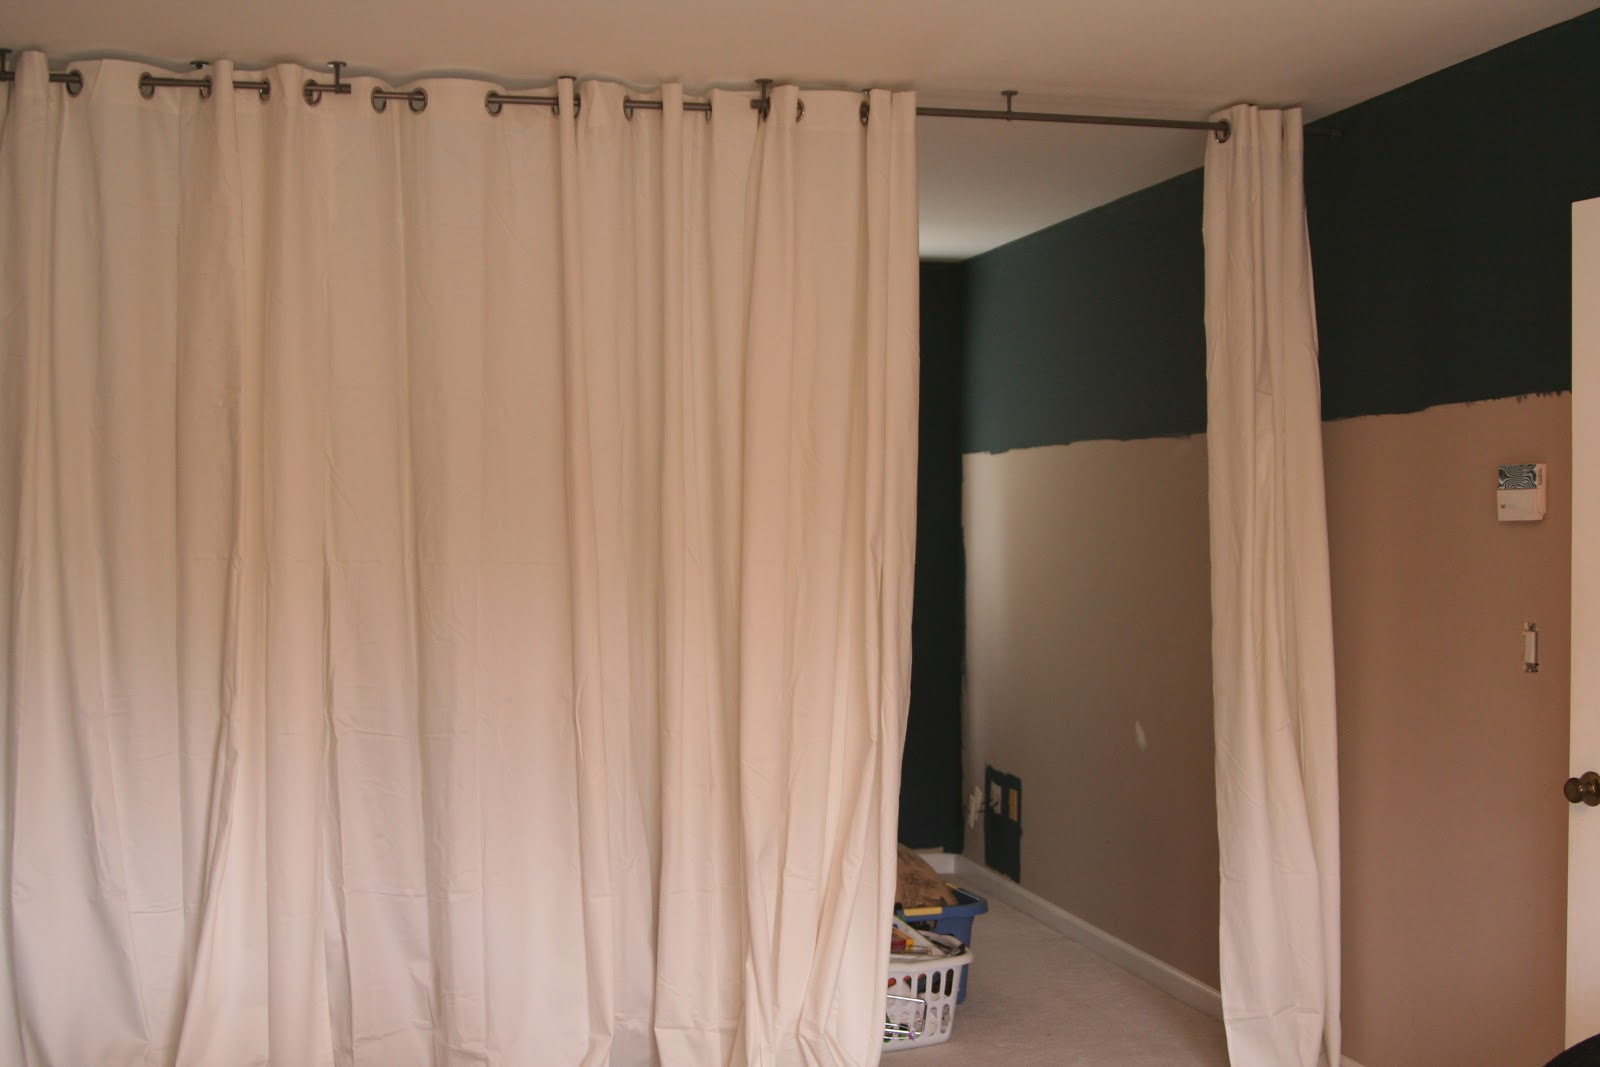 Room dividers curtain track - There Are Six Panels Total So We Can Open It Up Anywhere But There S Probably Going To A Dresser On The Other Side In The Middle So We Ll Probably Mostly